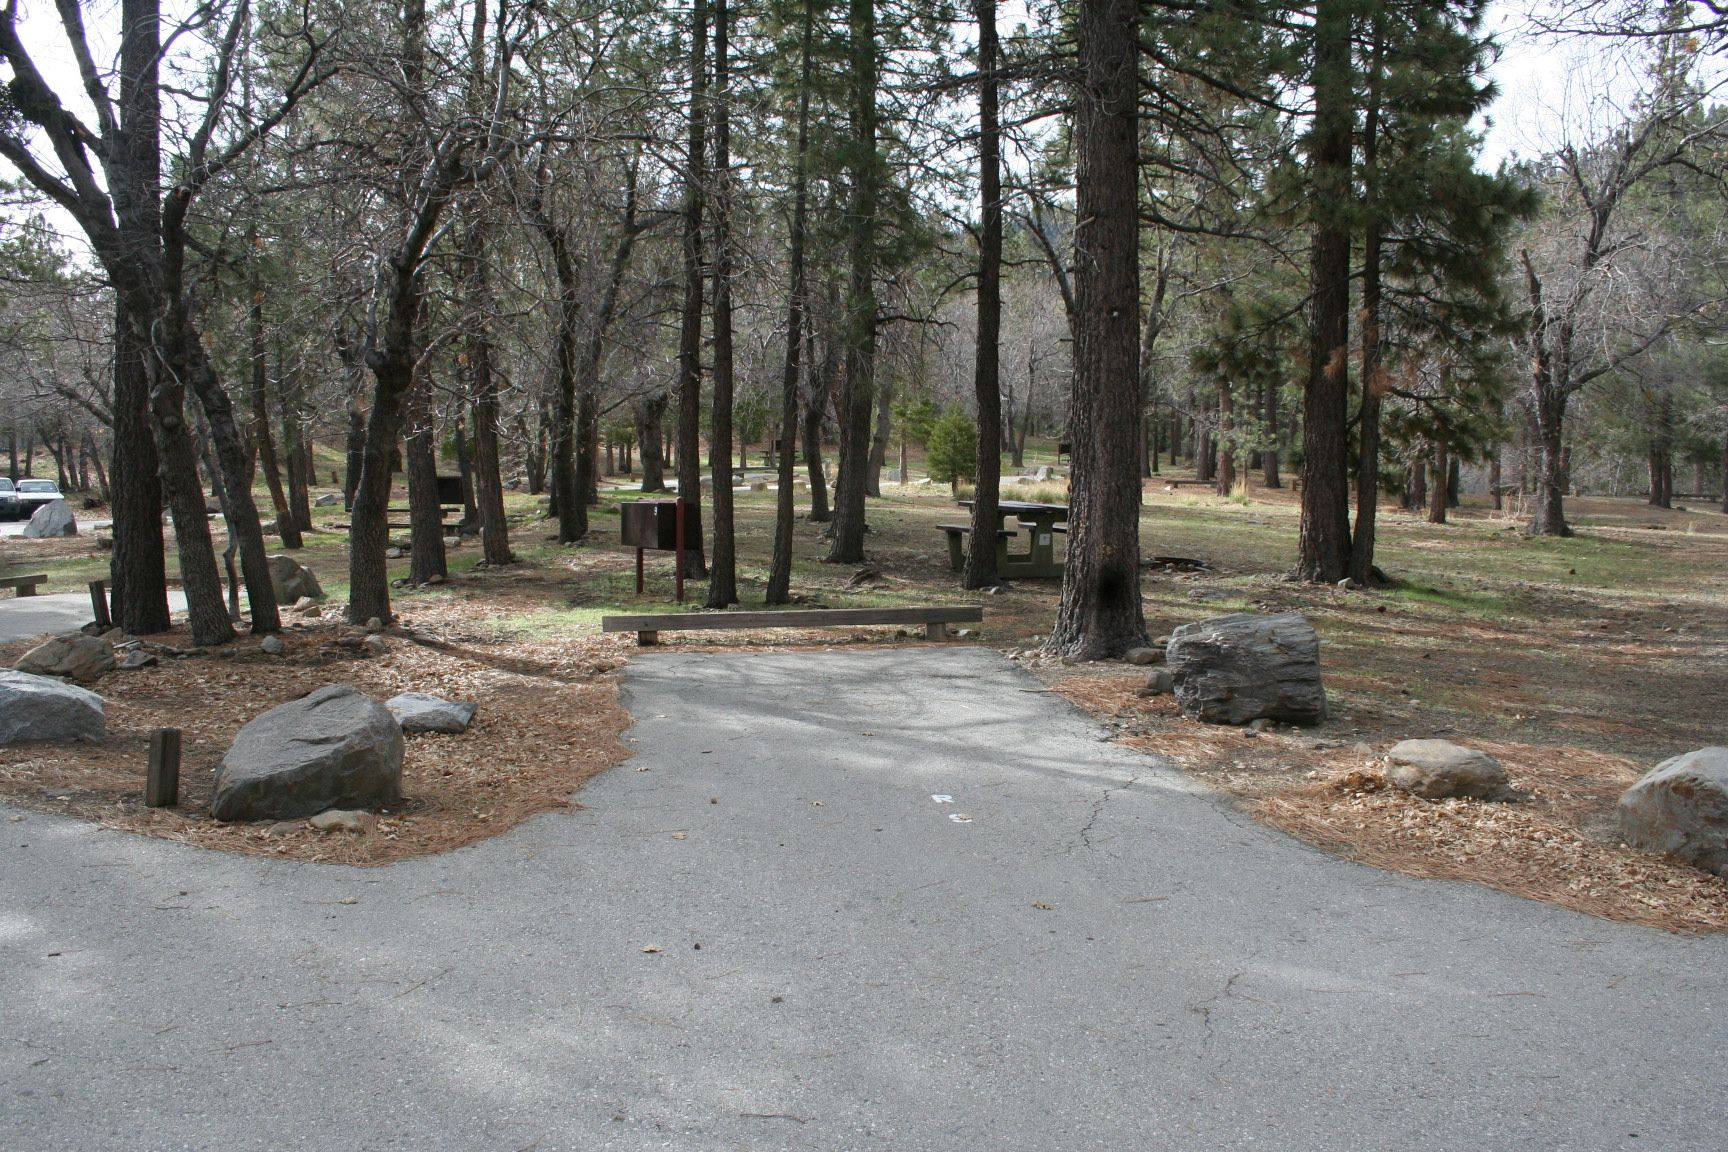 Mountain Oak Campground (With images) | Southern ...